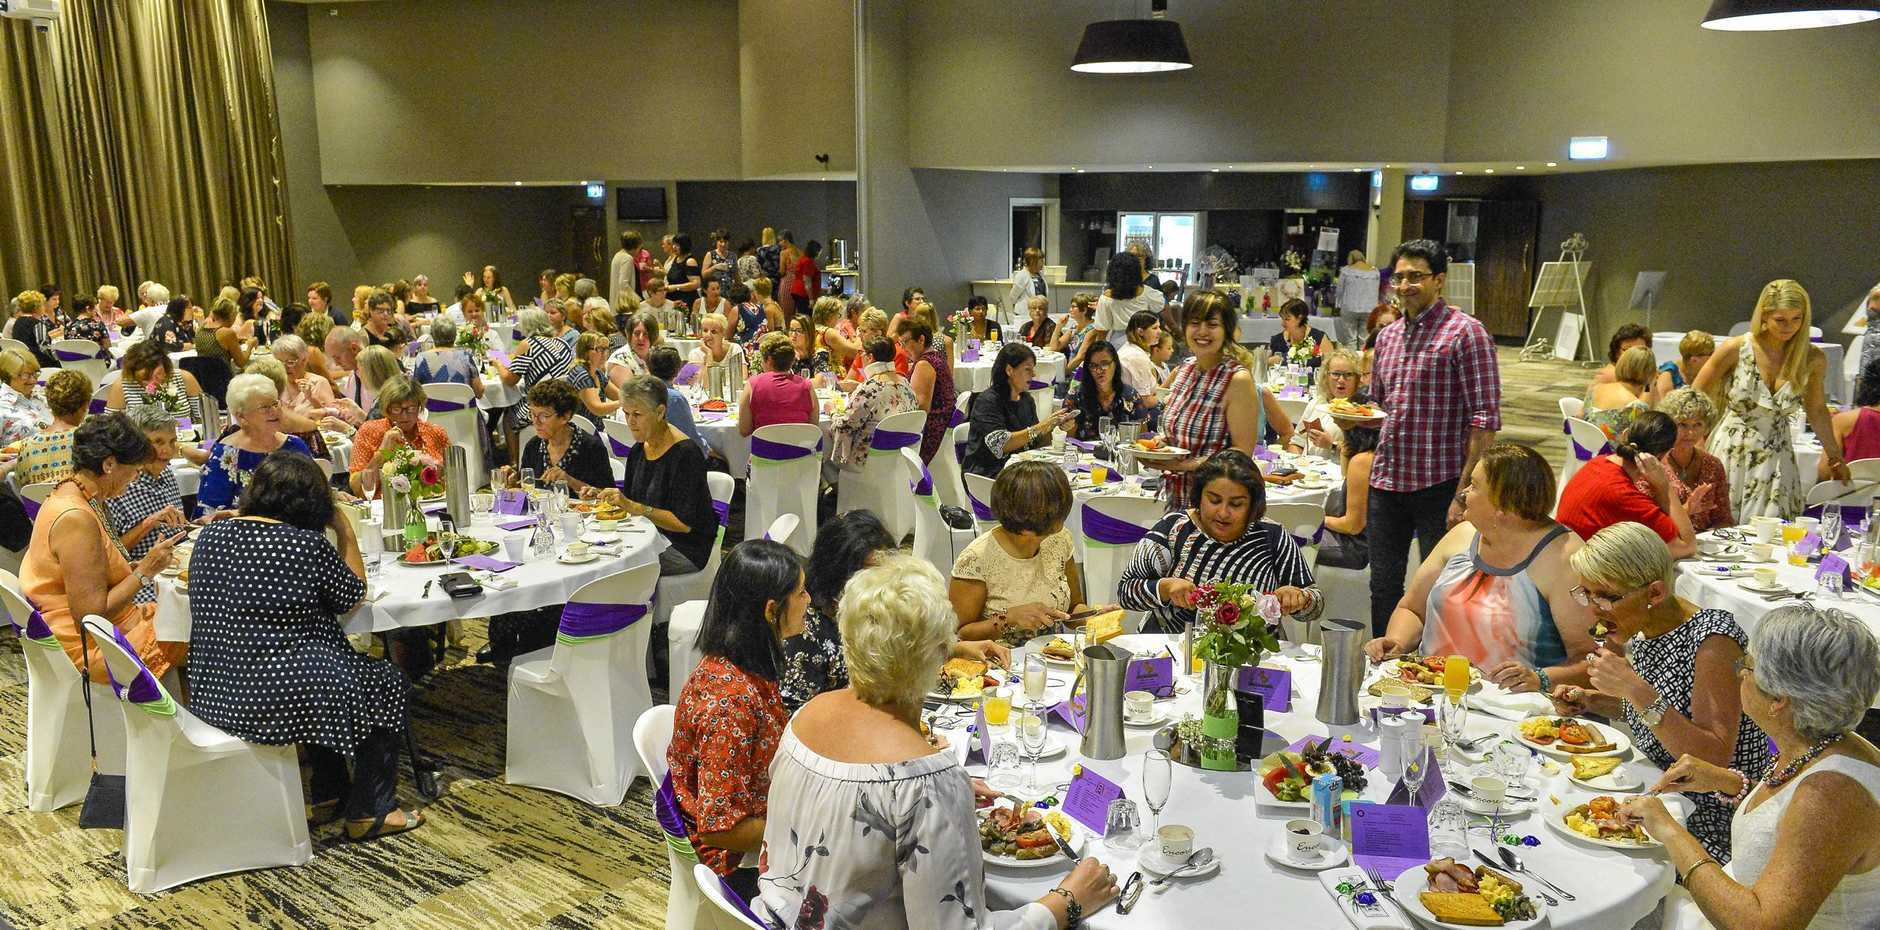 The Zonta Club of Gladstone's International Women's Day Breakfast will be held on March 10 at the Yaralla Sports Club.